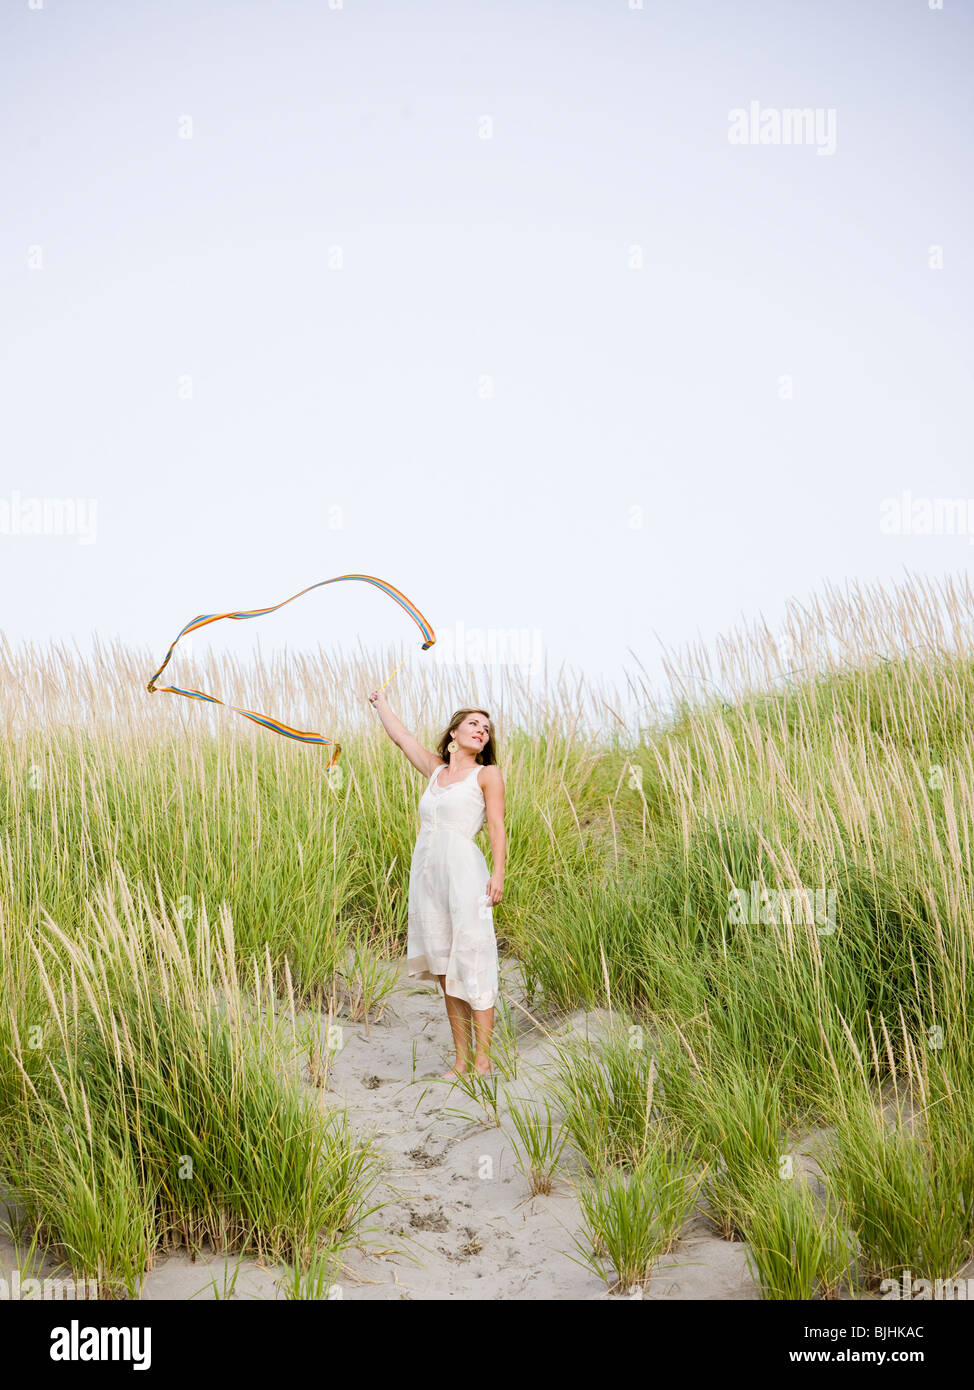 woman at the beach with her scarf blowing away in the wind as she stands on a dune covered with tall grass - Stock Image